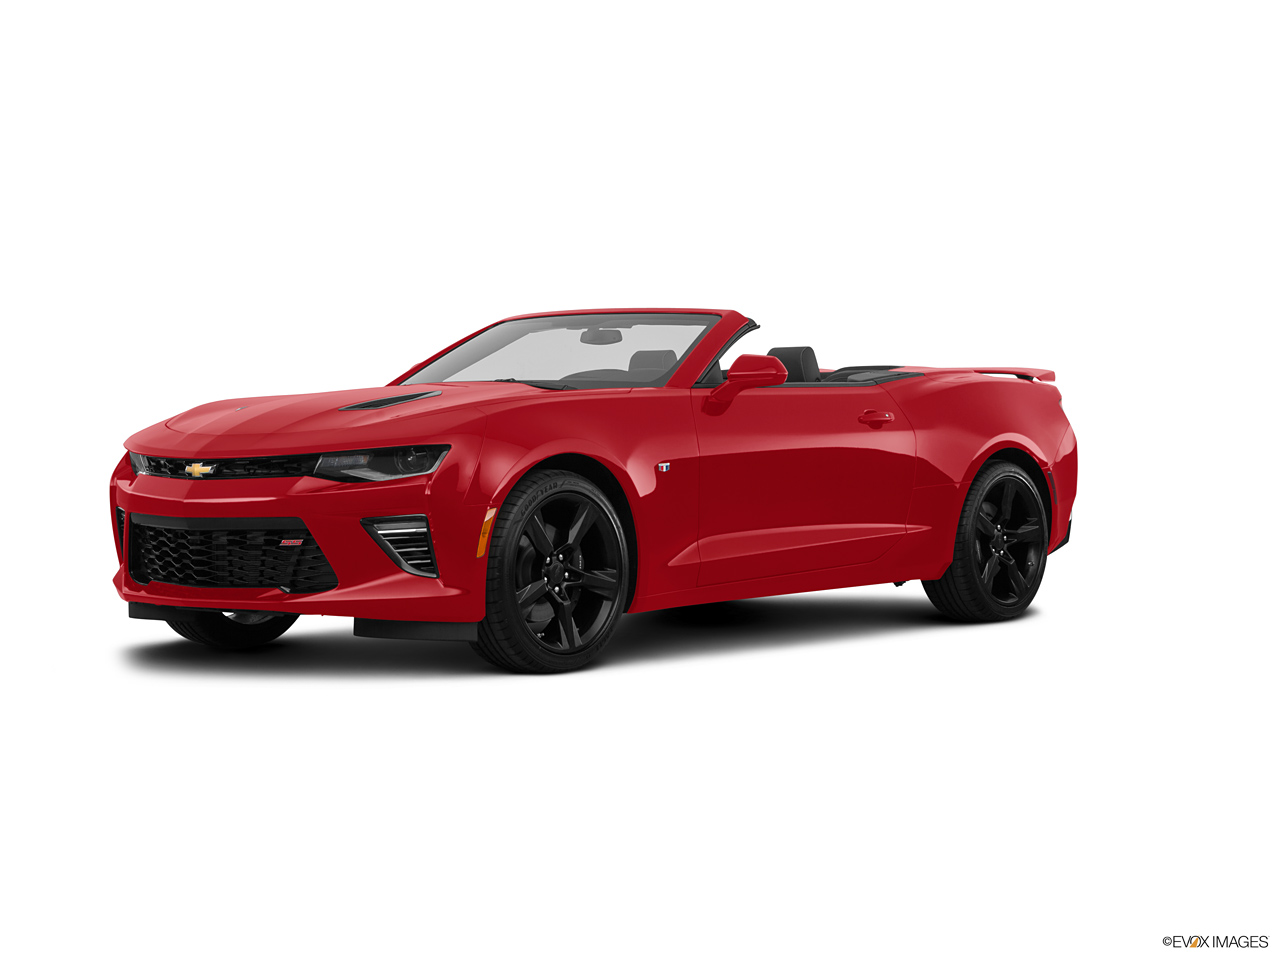 Cars For Sale In Baton Rouge >> Chevrolet Camaro Convertible 2018 6.2L SS in Kuwait: New Car Prices, Specs, Reviews & Photos ...